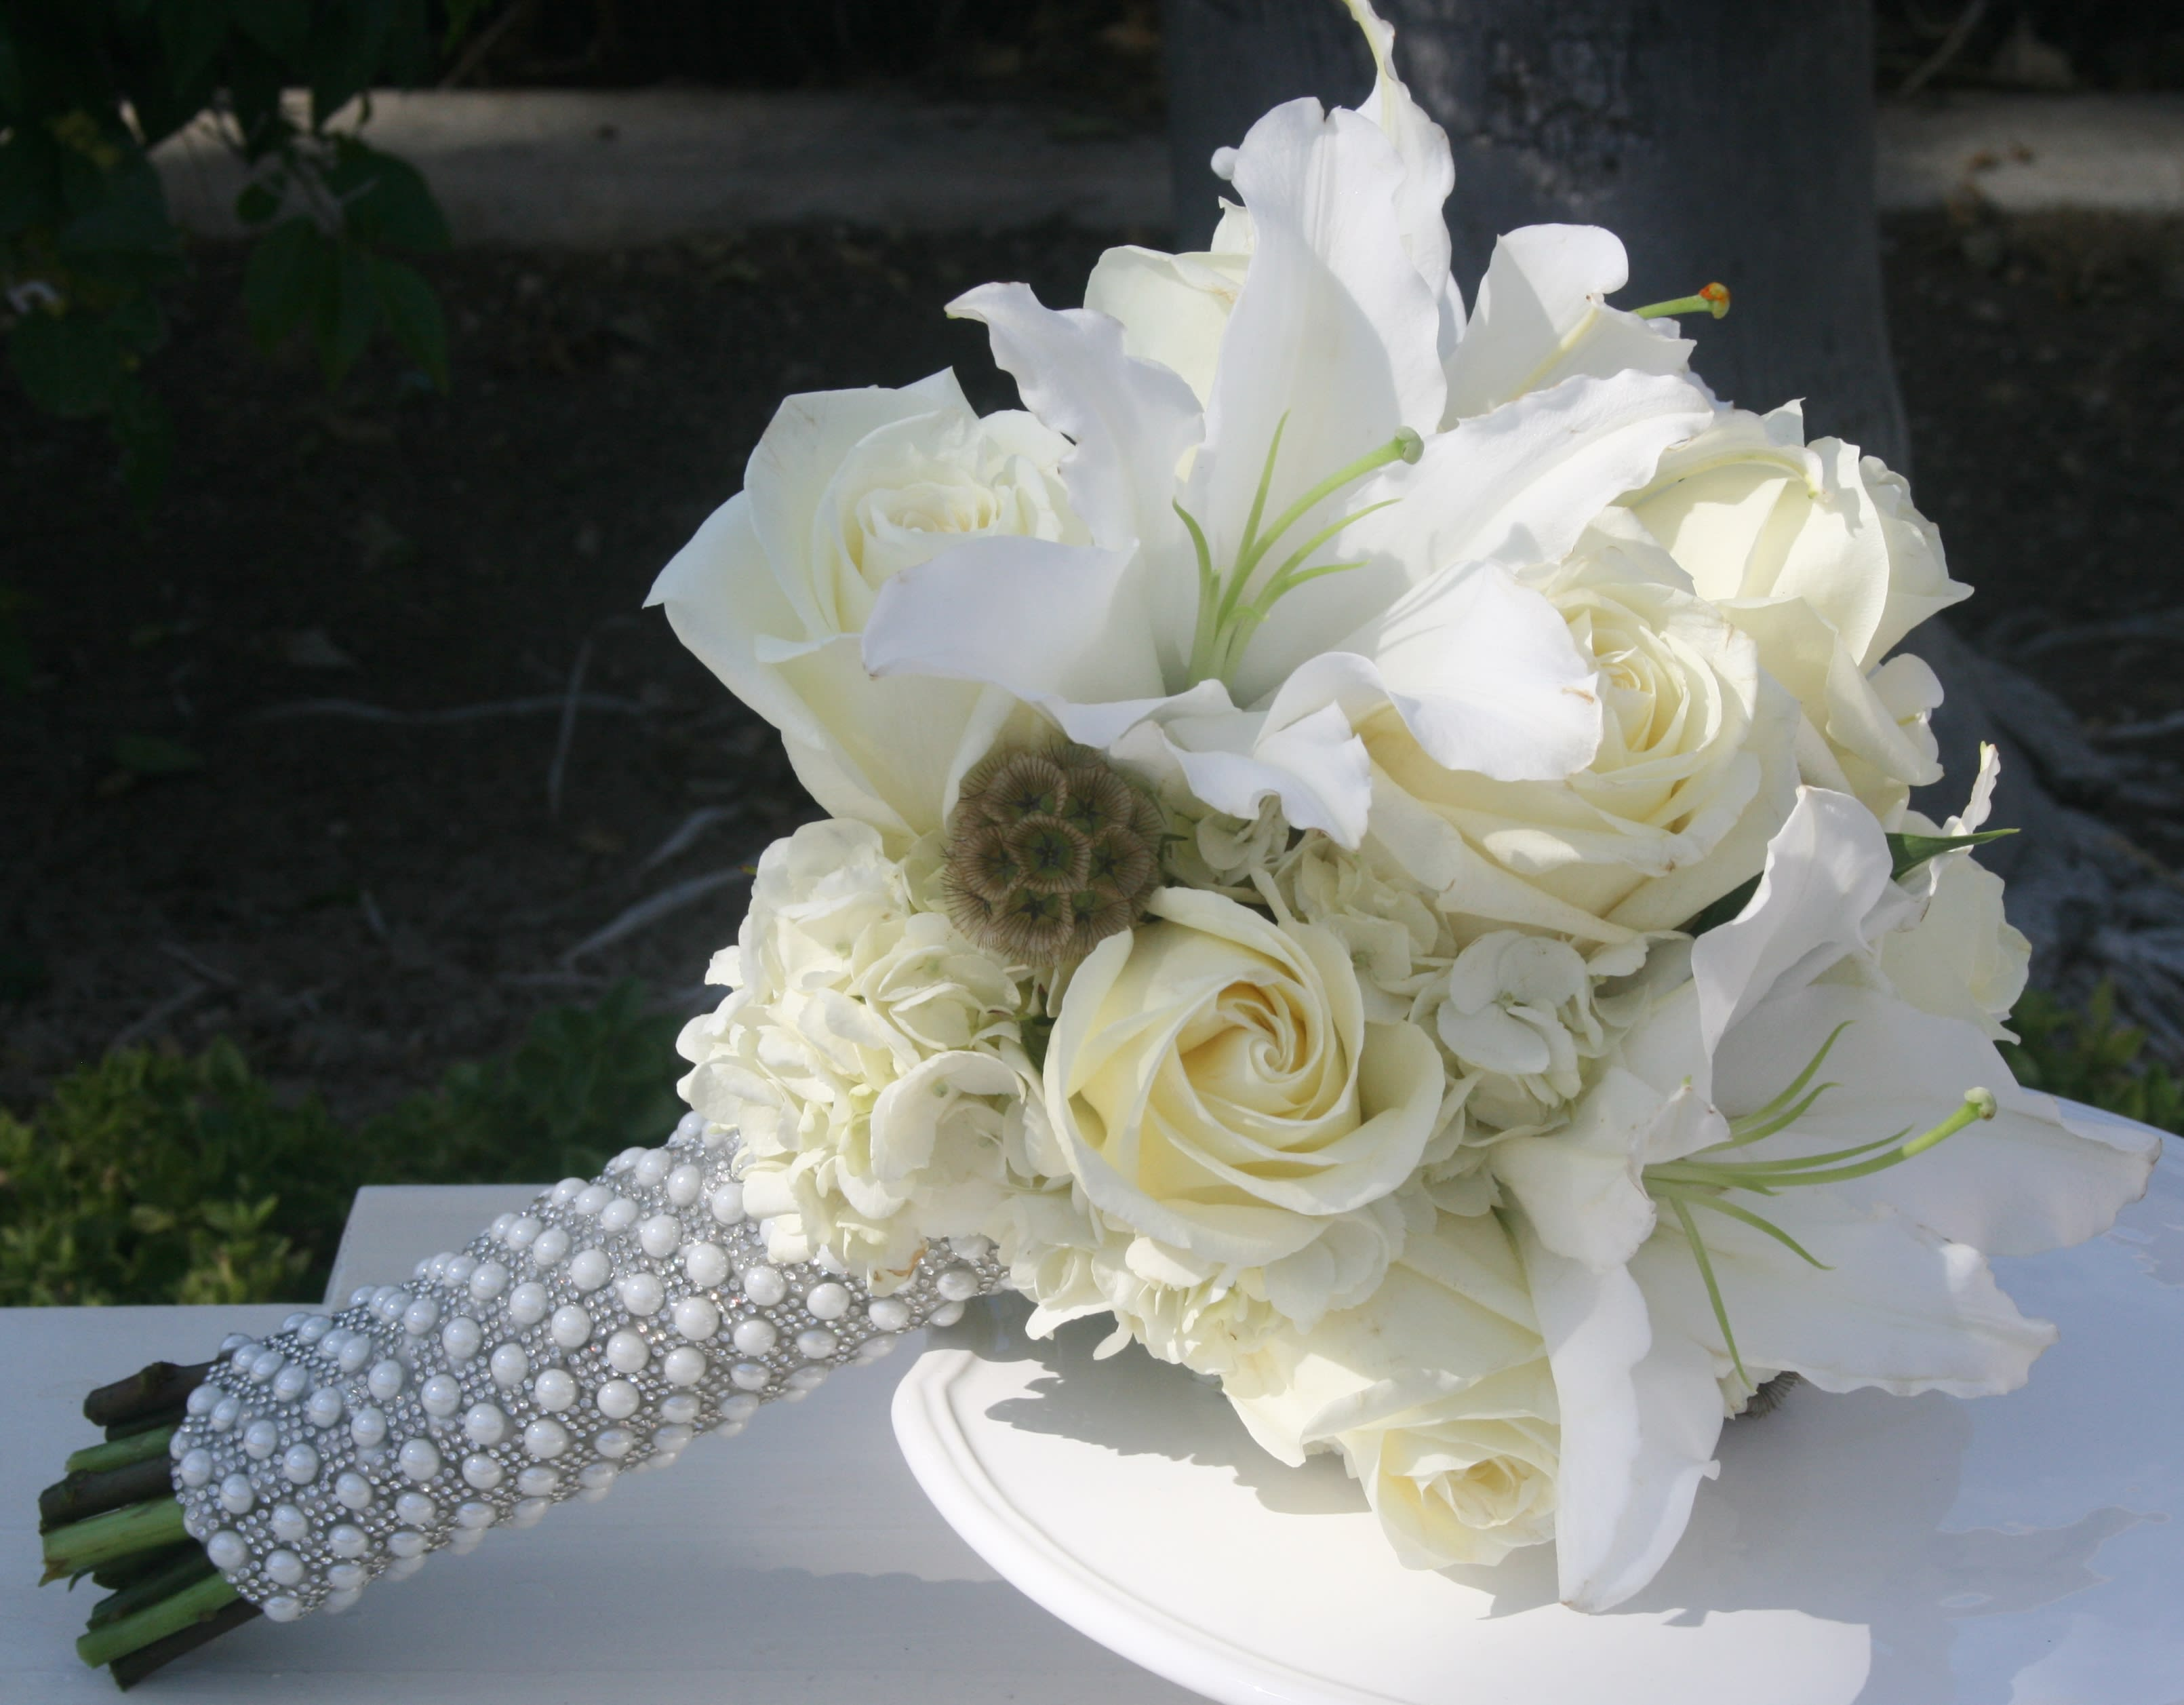 Wonderfully White Bridal Bouquet In Riverside Ca Willow Branch Florist Of Riverside